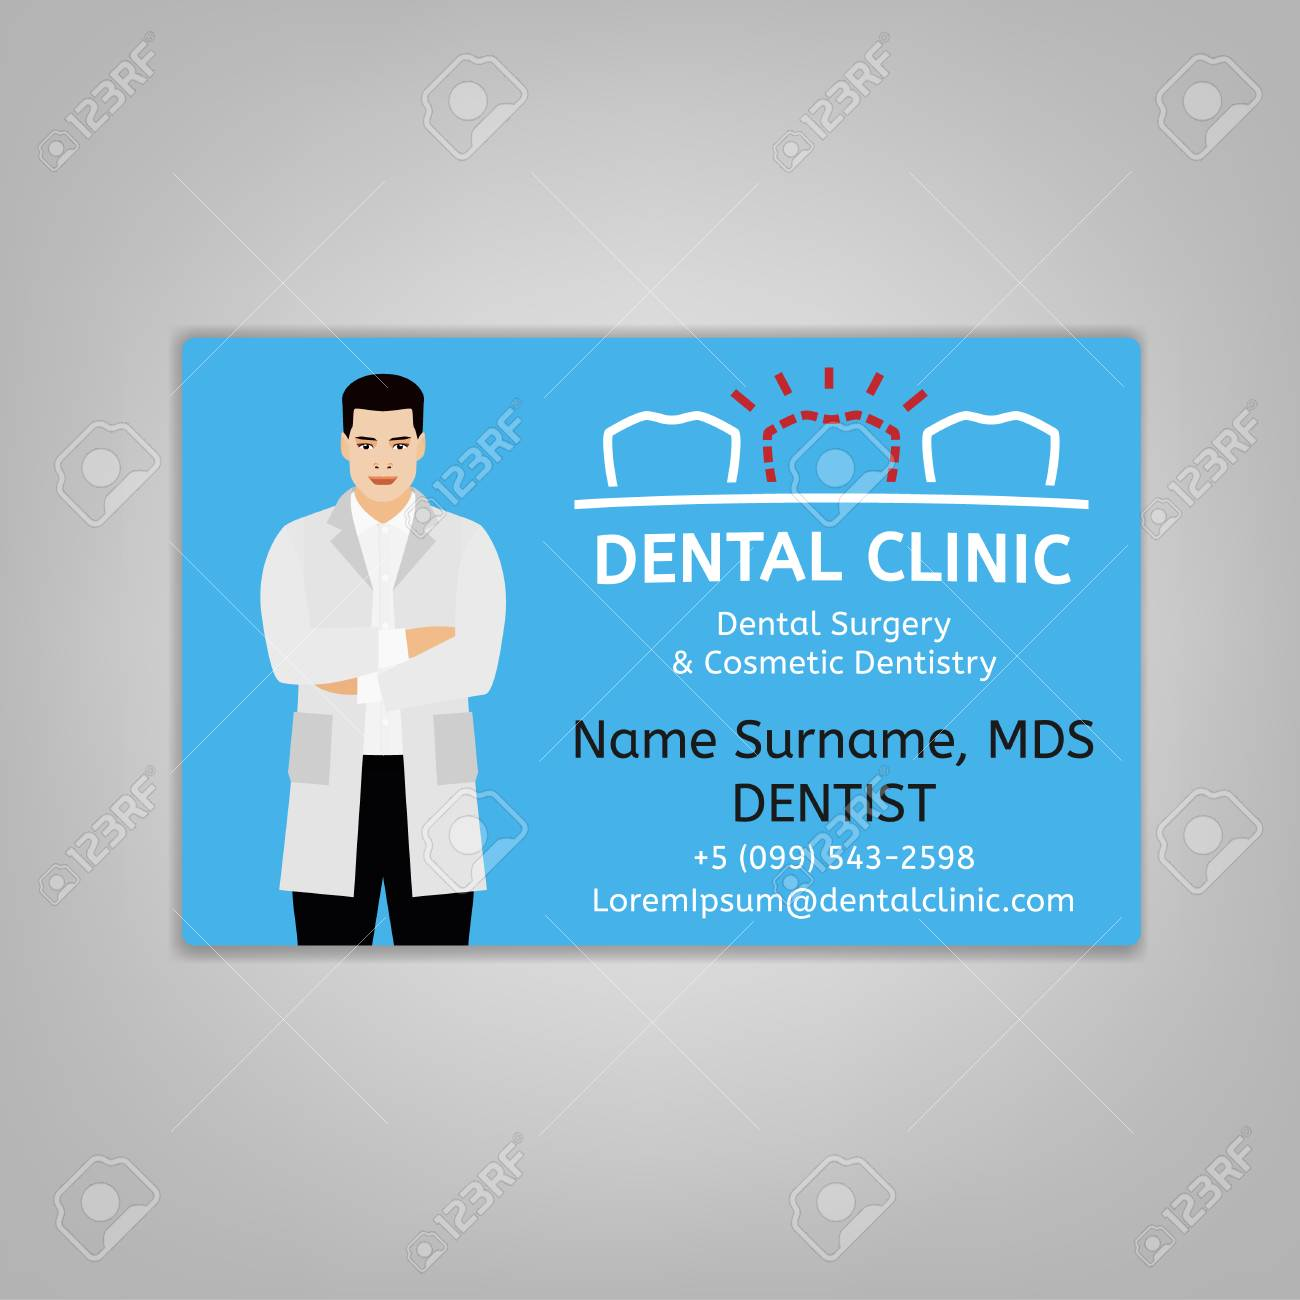 doctors id card with dentist image medical specialist badge